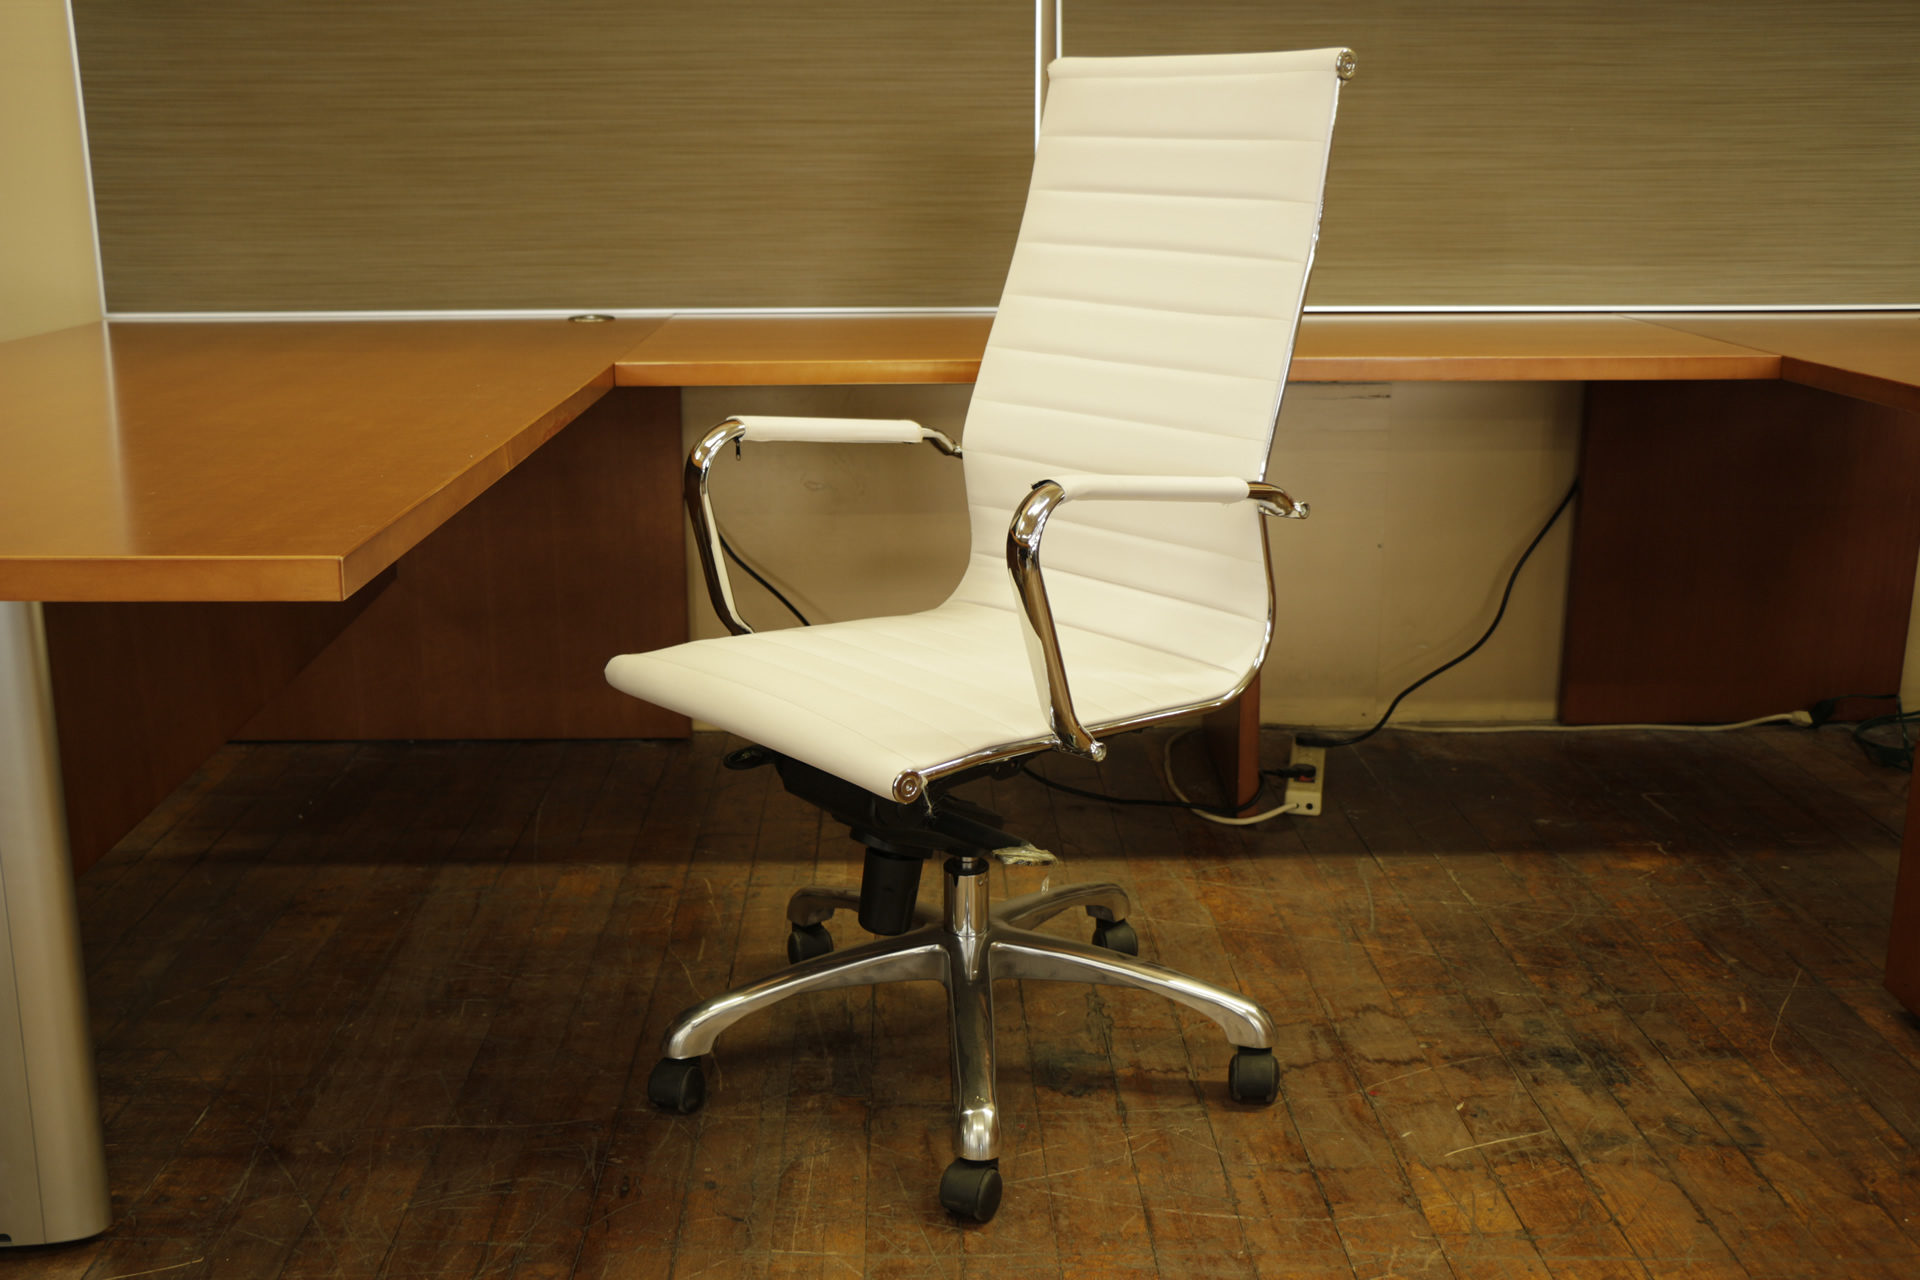 peartreeofficefurniture_peartreeofficefurniture_mg_3114.jpg